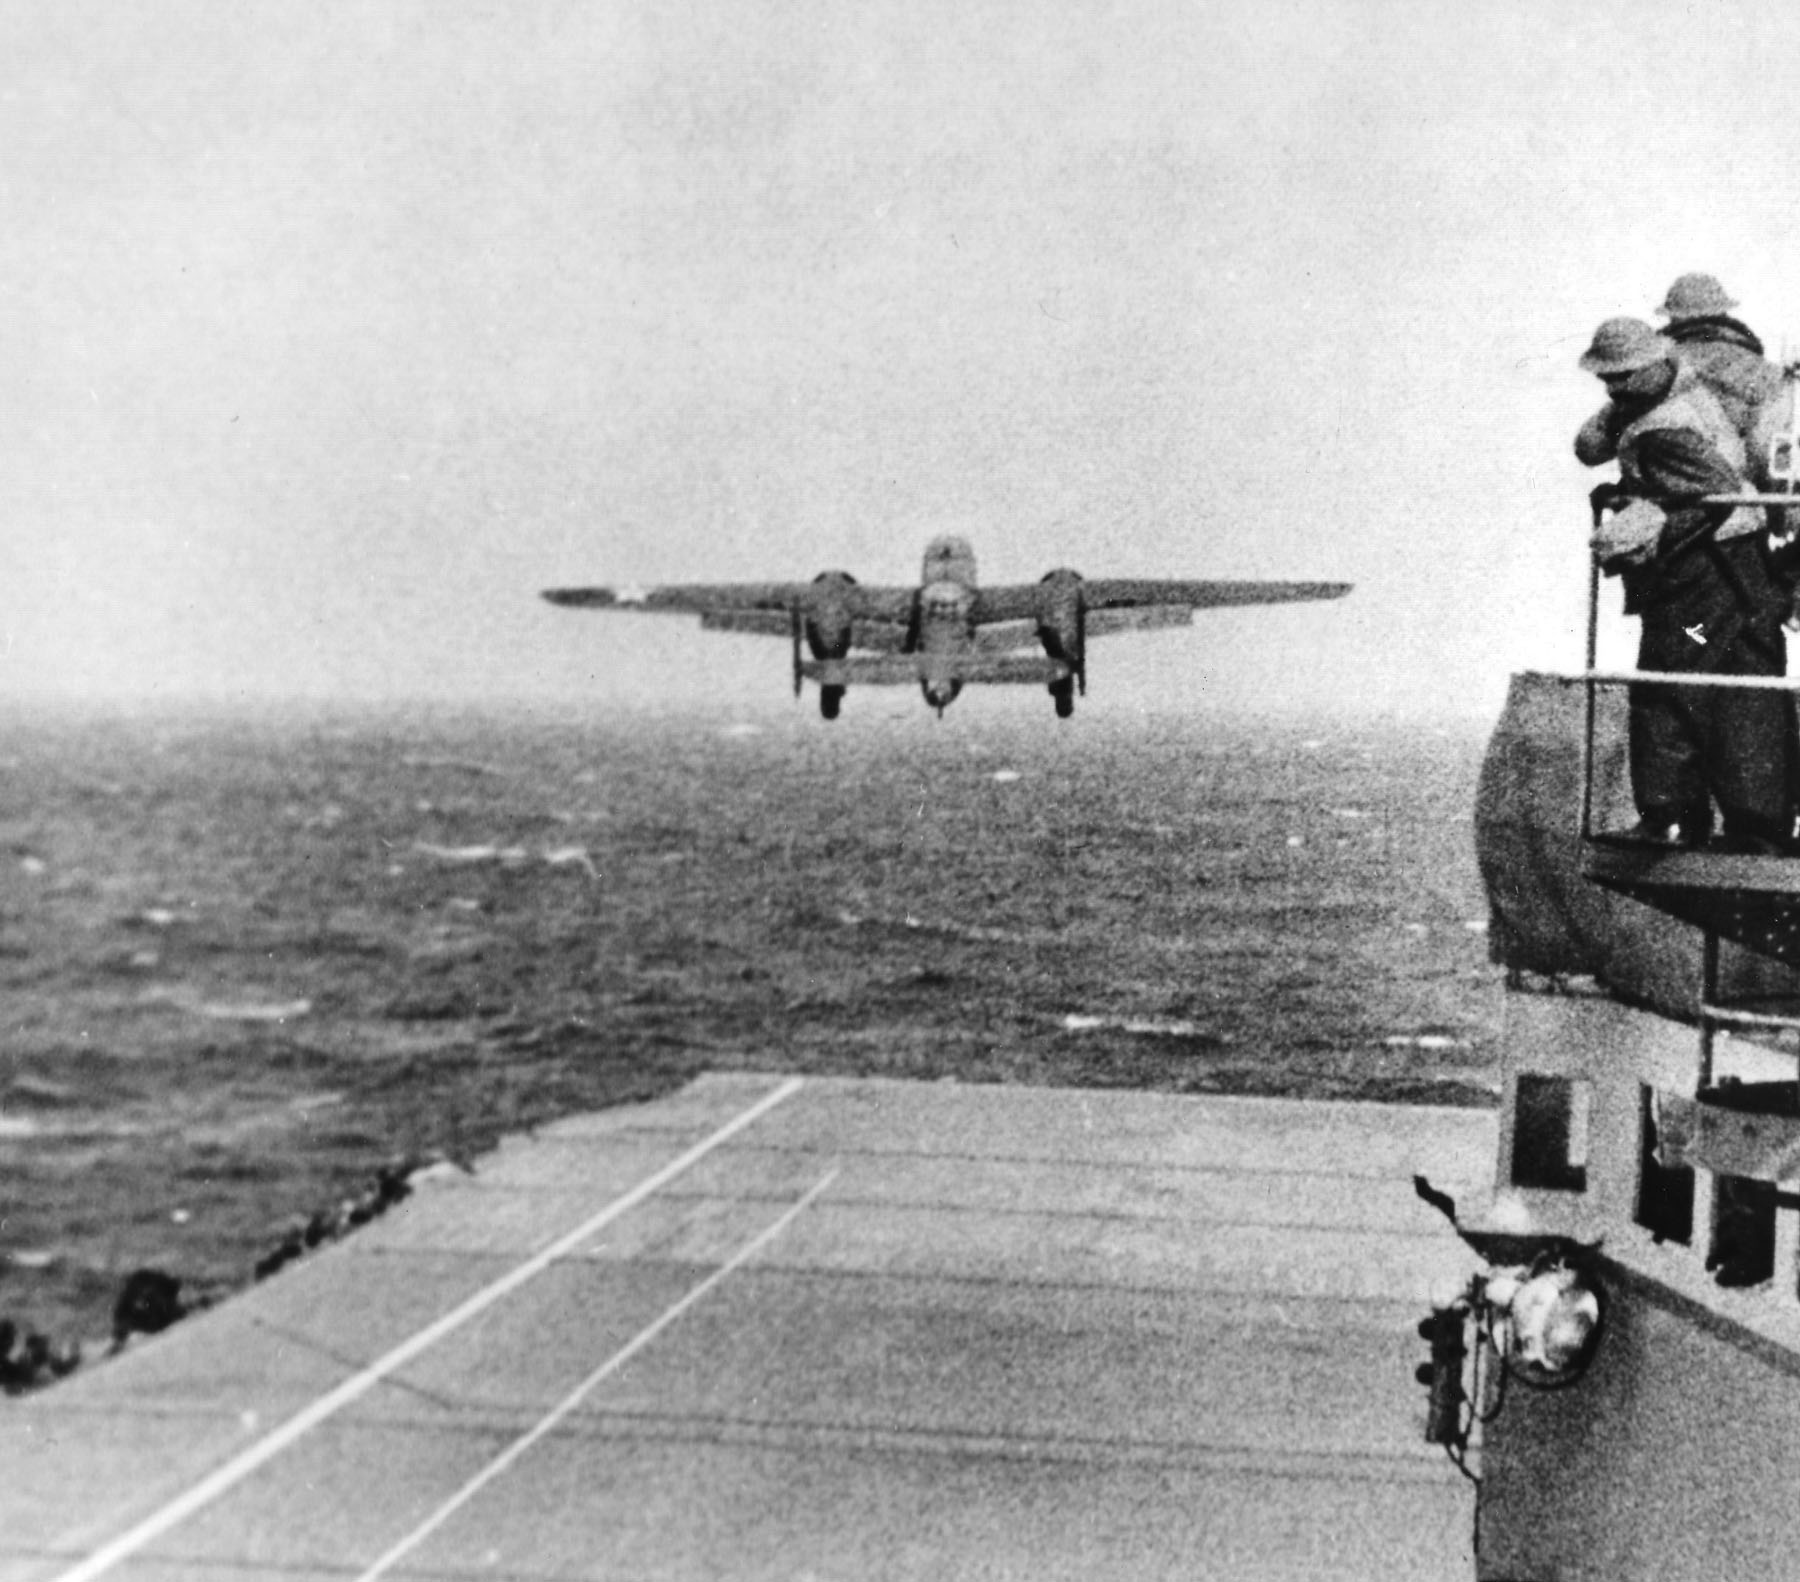 The USS Hornet had 16 U.S. Army Air Forces North American B-25B Mitchells on deck, ready for the Tokyo Raid on April 18, 1942. (U.S. Air Force photo)